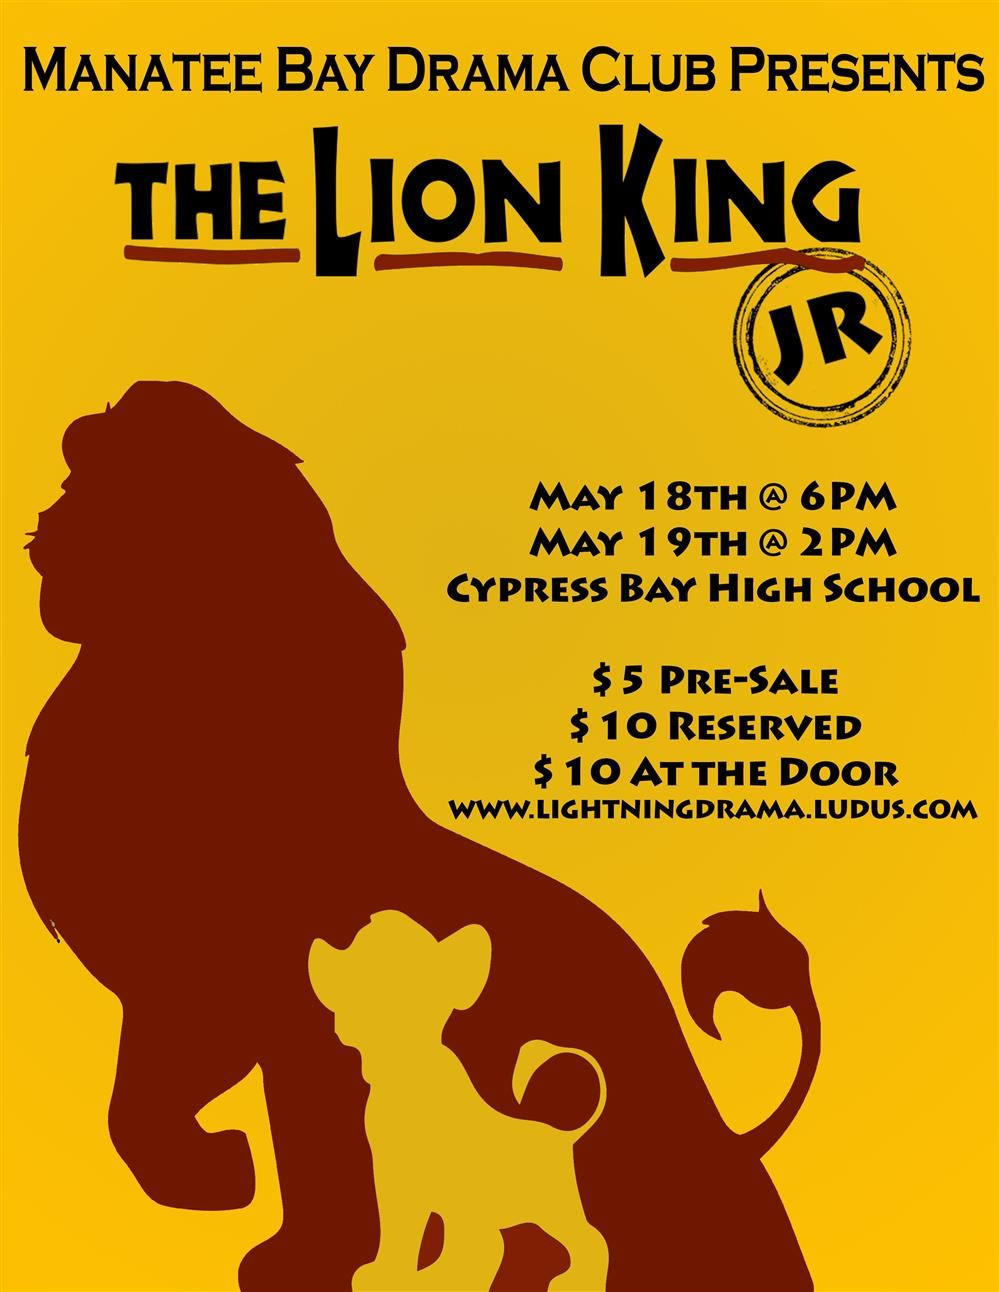 The Lion King Production by MBE Drama Students